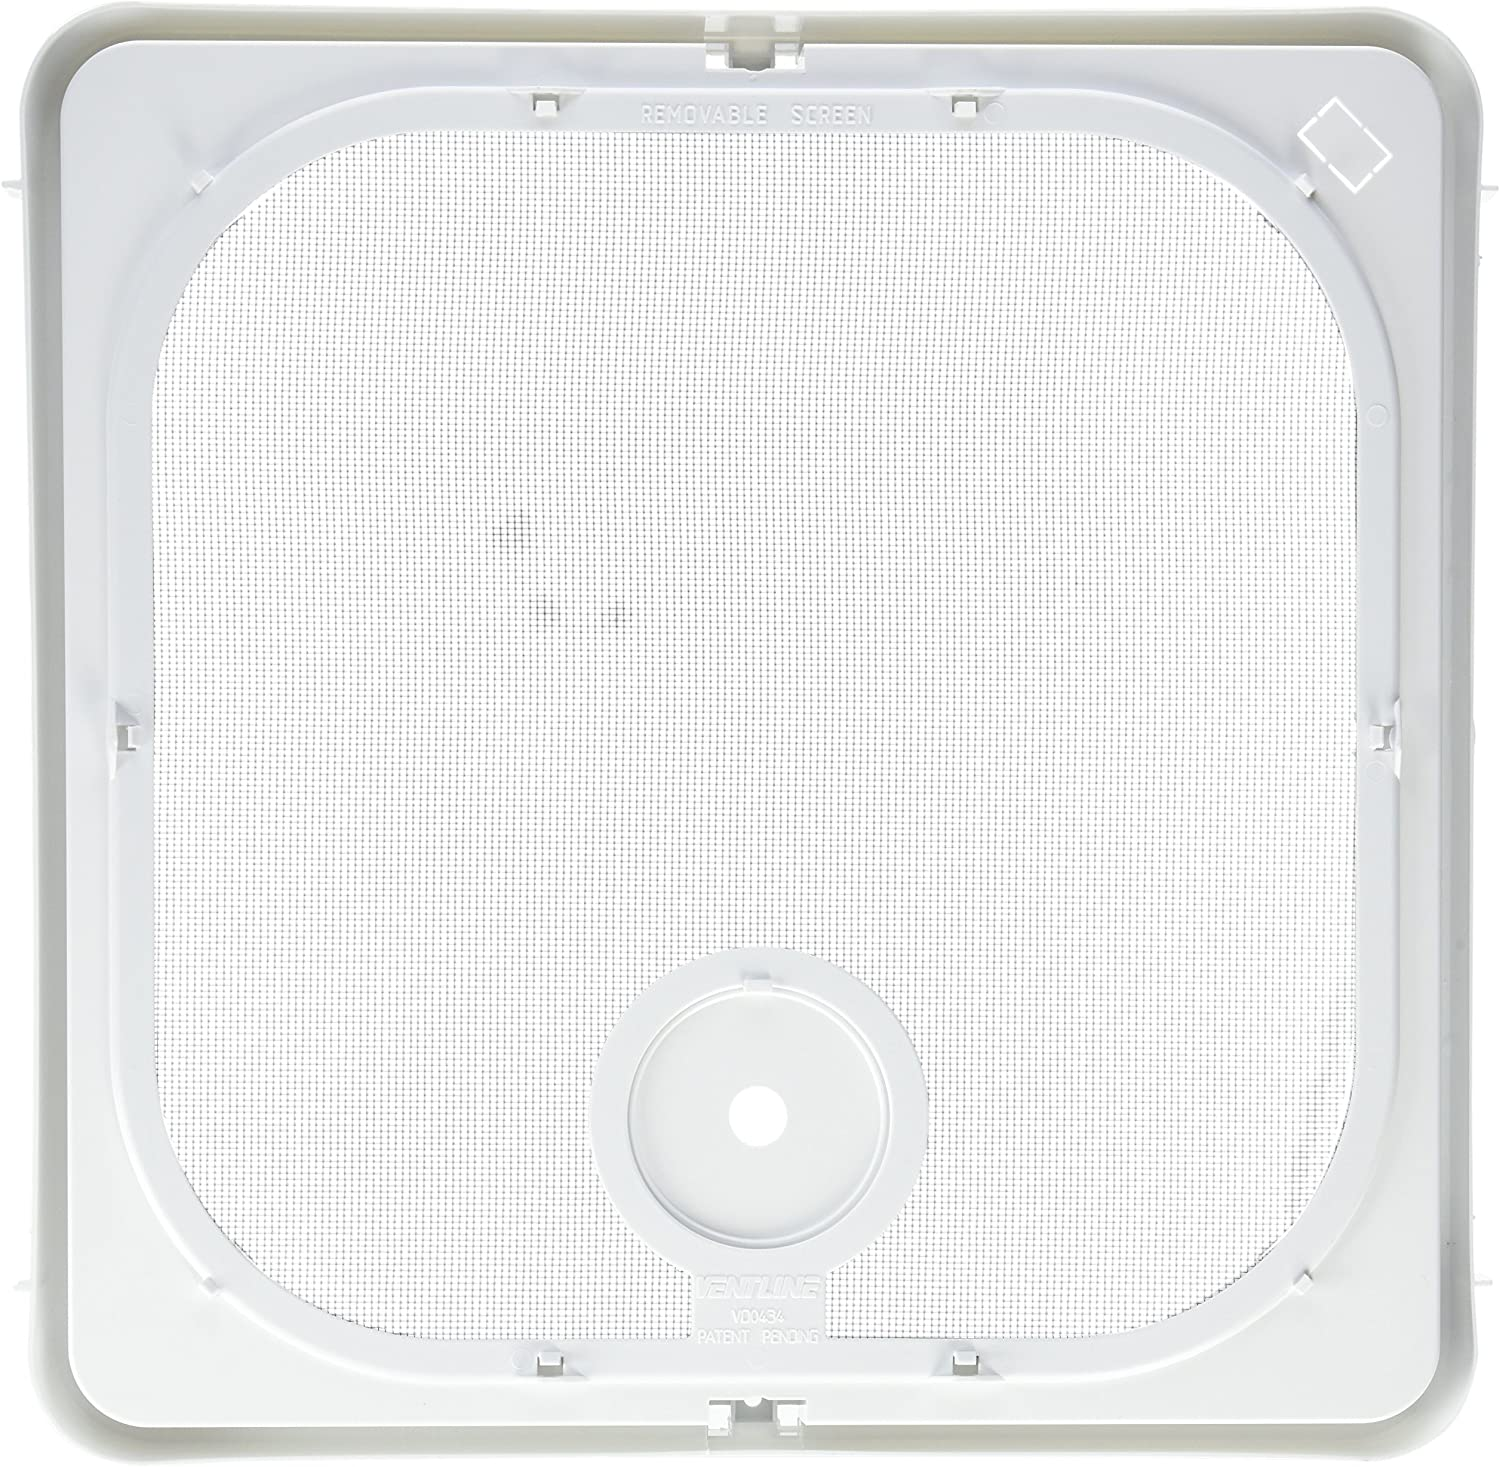 Ventline BVC0573-41 Ventadome Replacement Parts - Removable Polar White Screen